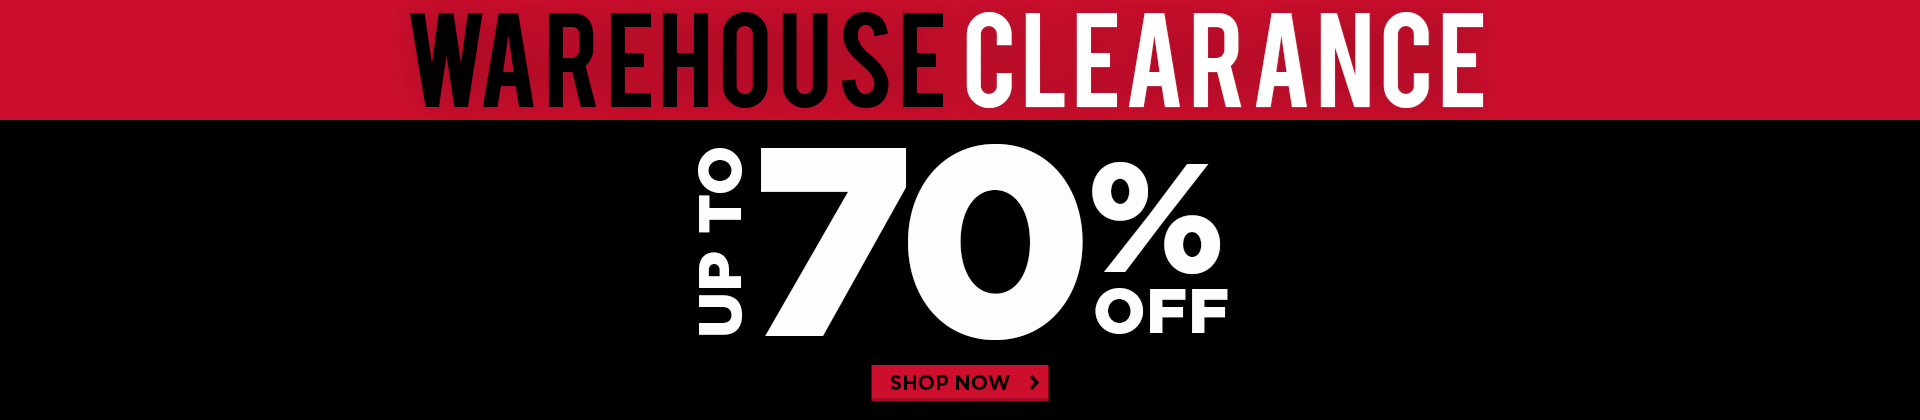 H1:Warehouse Clearance